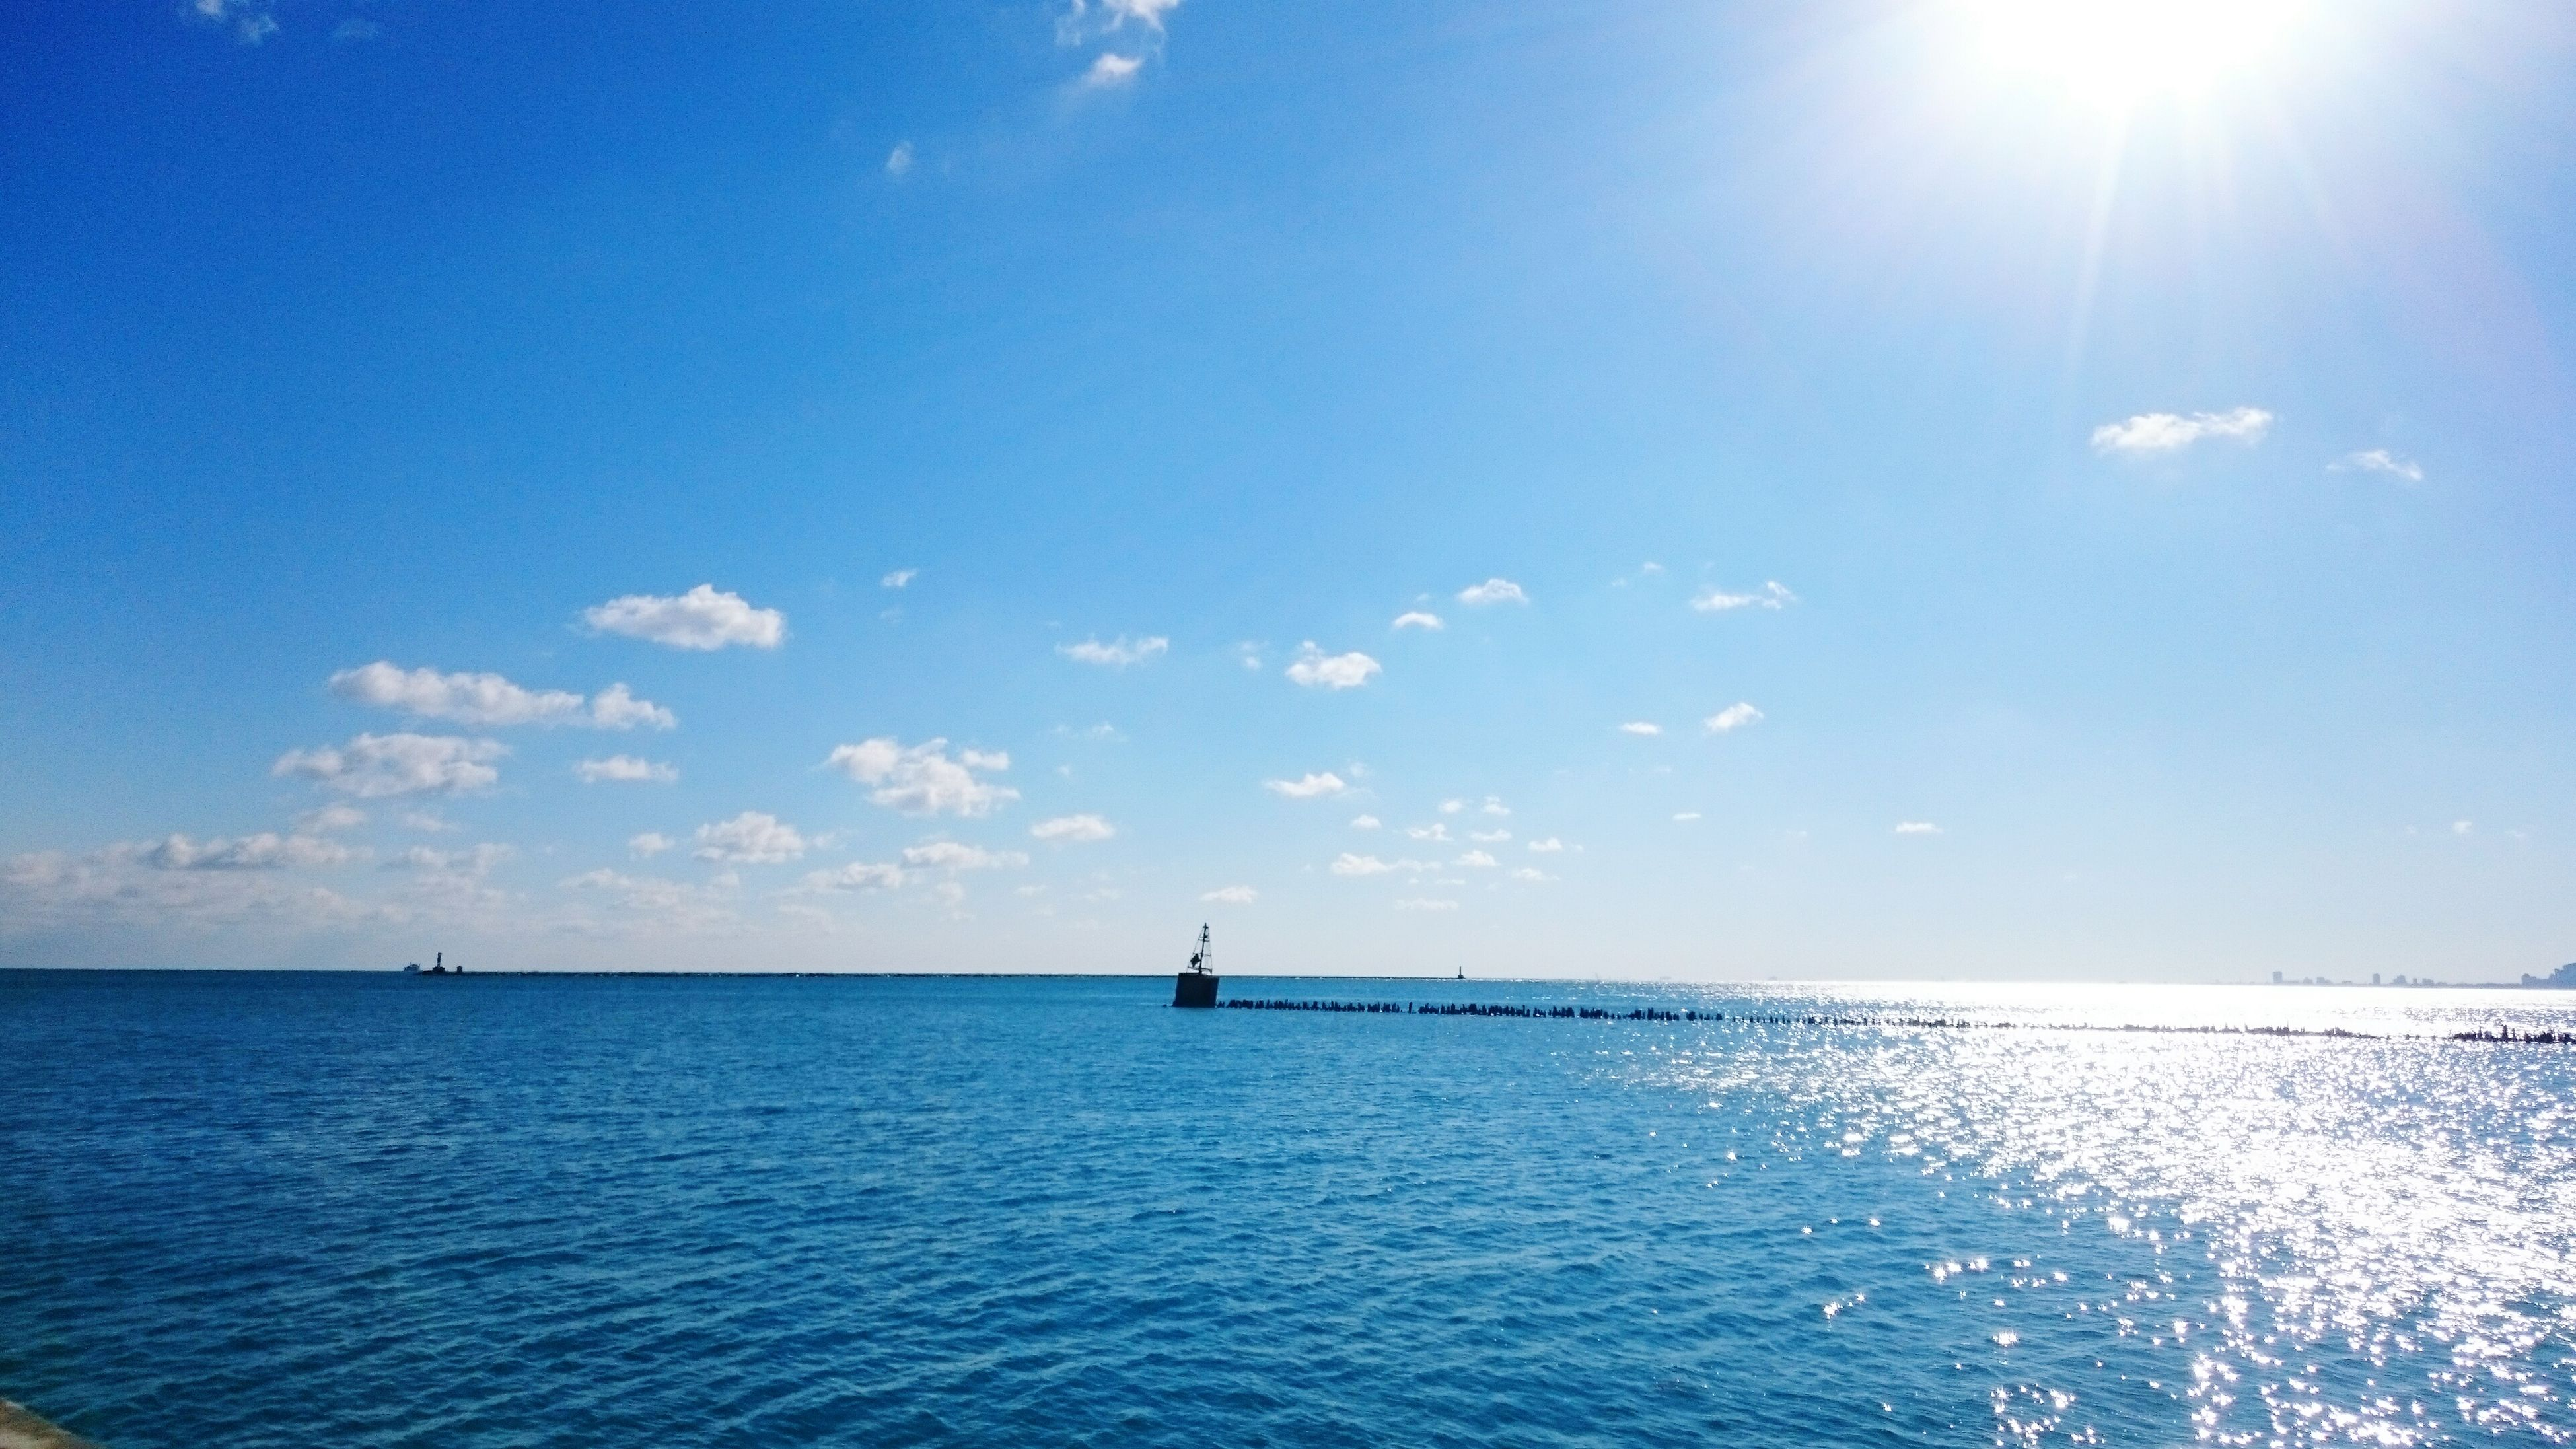 sea, water, horizon over water, blue, waterfront, tranquility, tranquil scene, sky, scenics, beauty in nature, sun, sunlight, sunbeam, nature, rippled, nautical vessel, idyllic, seascape, transportation, day